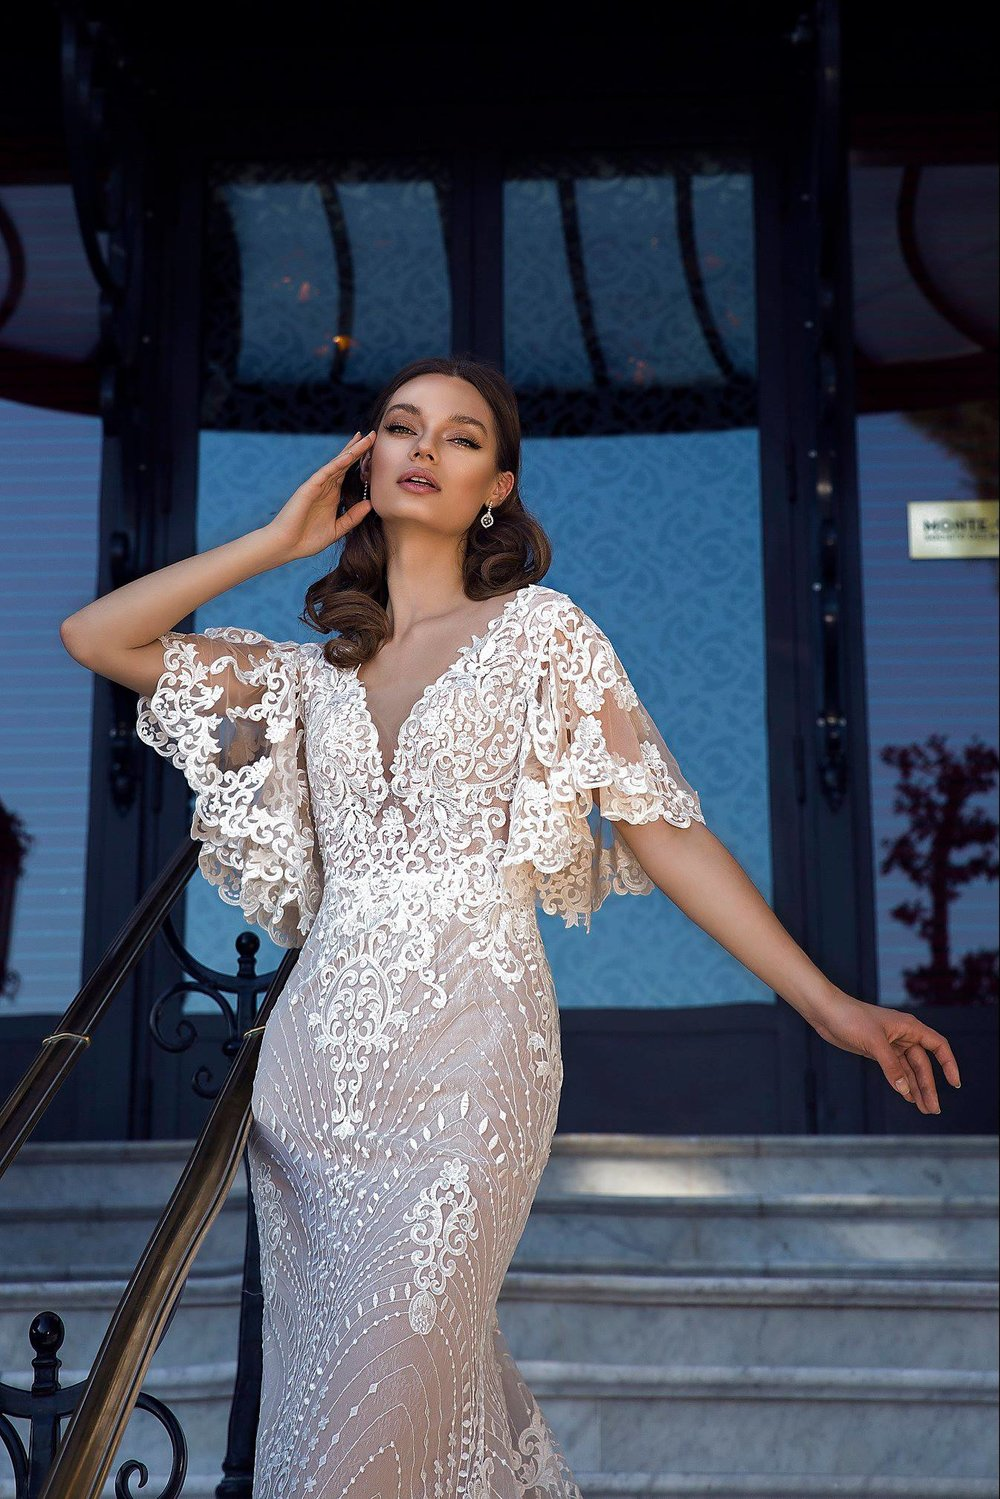 PARIS wedding dress by TINA VALERDI